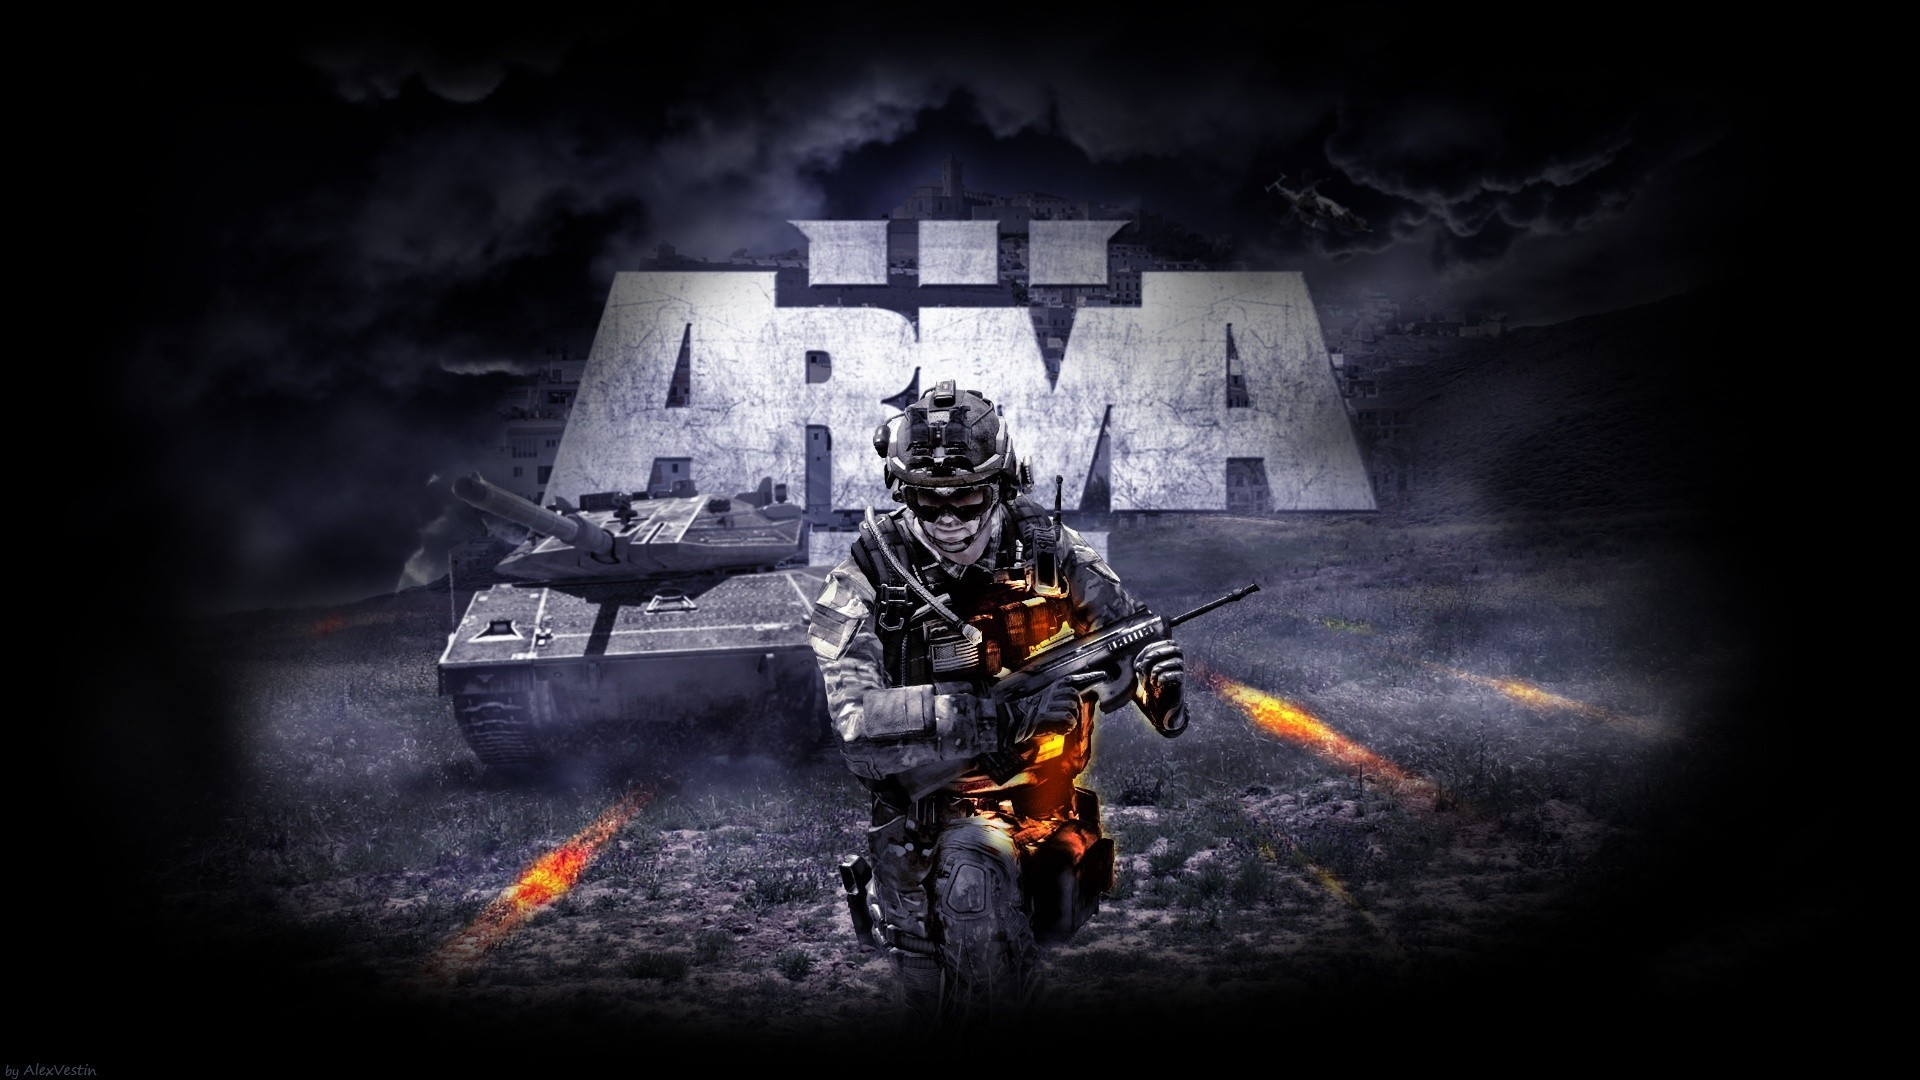 1920x1080 56 Arma 3 HD Wallpapers | Backgrounds - Wallpaper Abyss